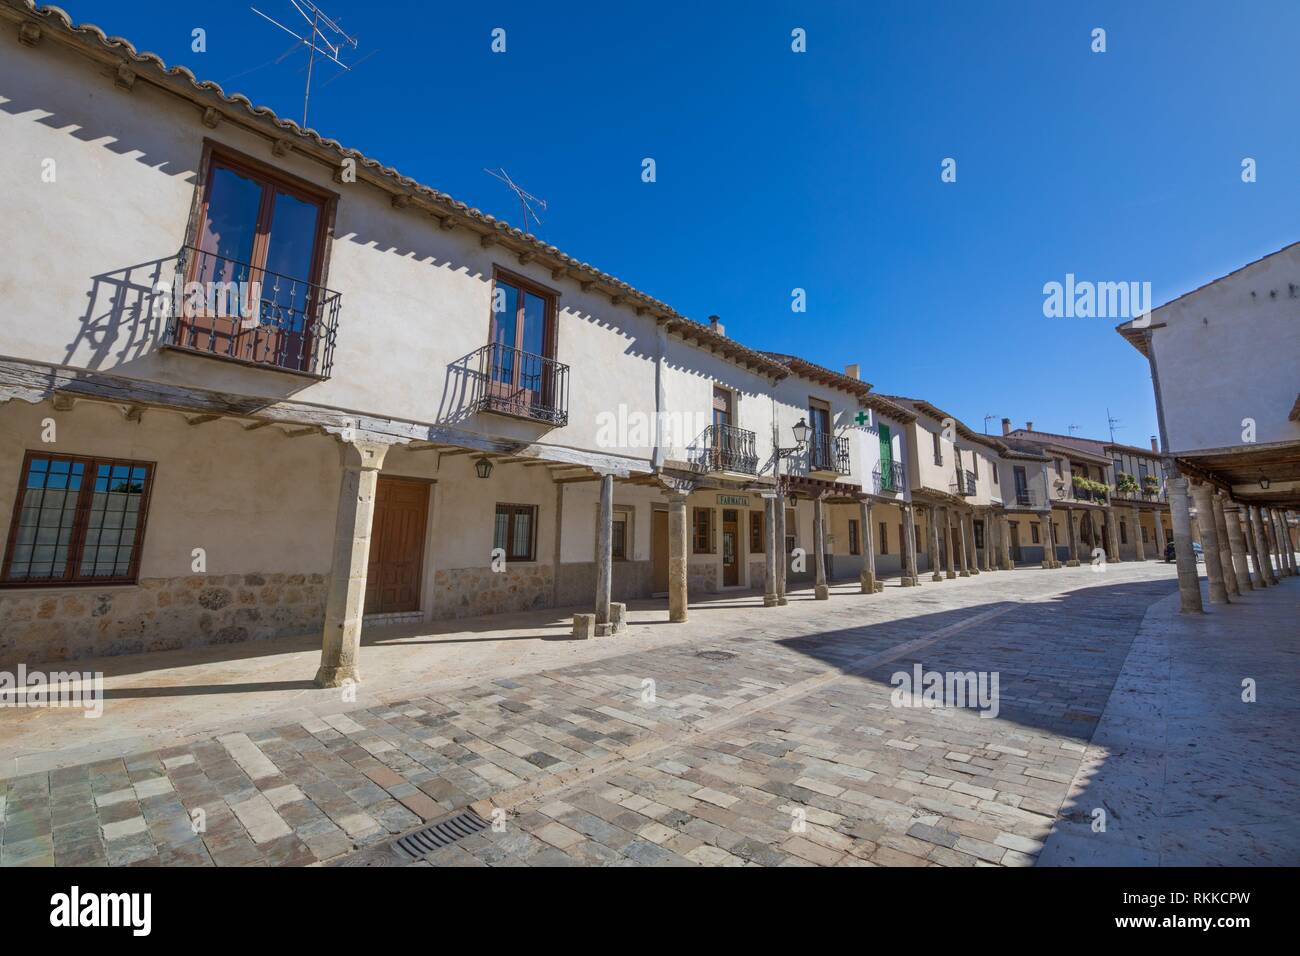 ancient pedestrian medieval street with arcaded buildings, landmark and monument from seventeenth century, in Ampudia village, Palencia, Castile - Stock Image